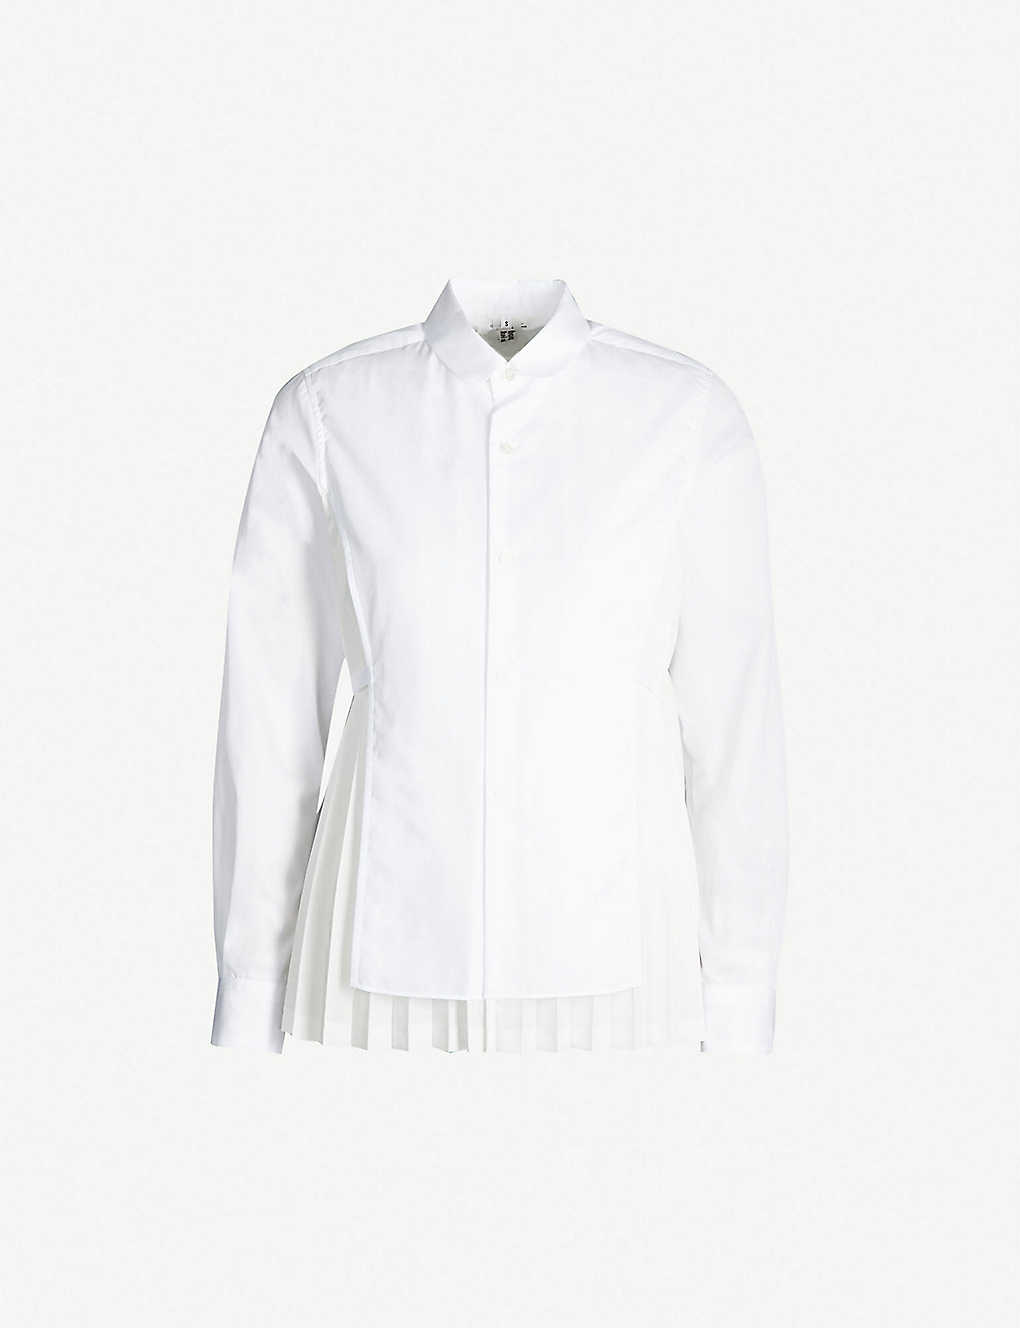 dfdd29ad877d5 NOIR KEI NINOMIYA - Pleated back cotton shirt | Selfridges.com